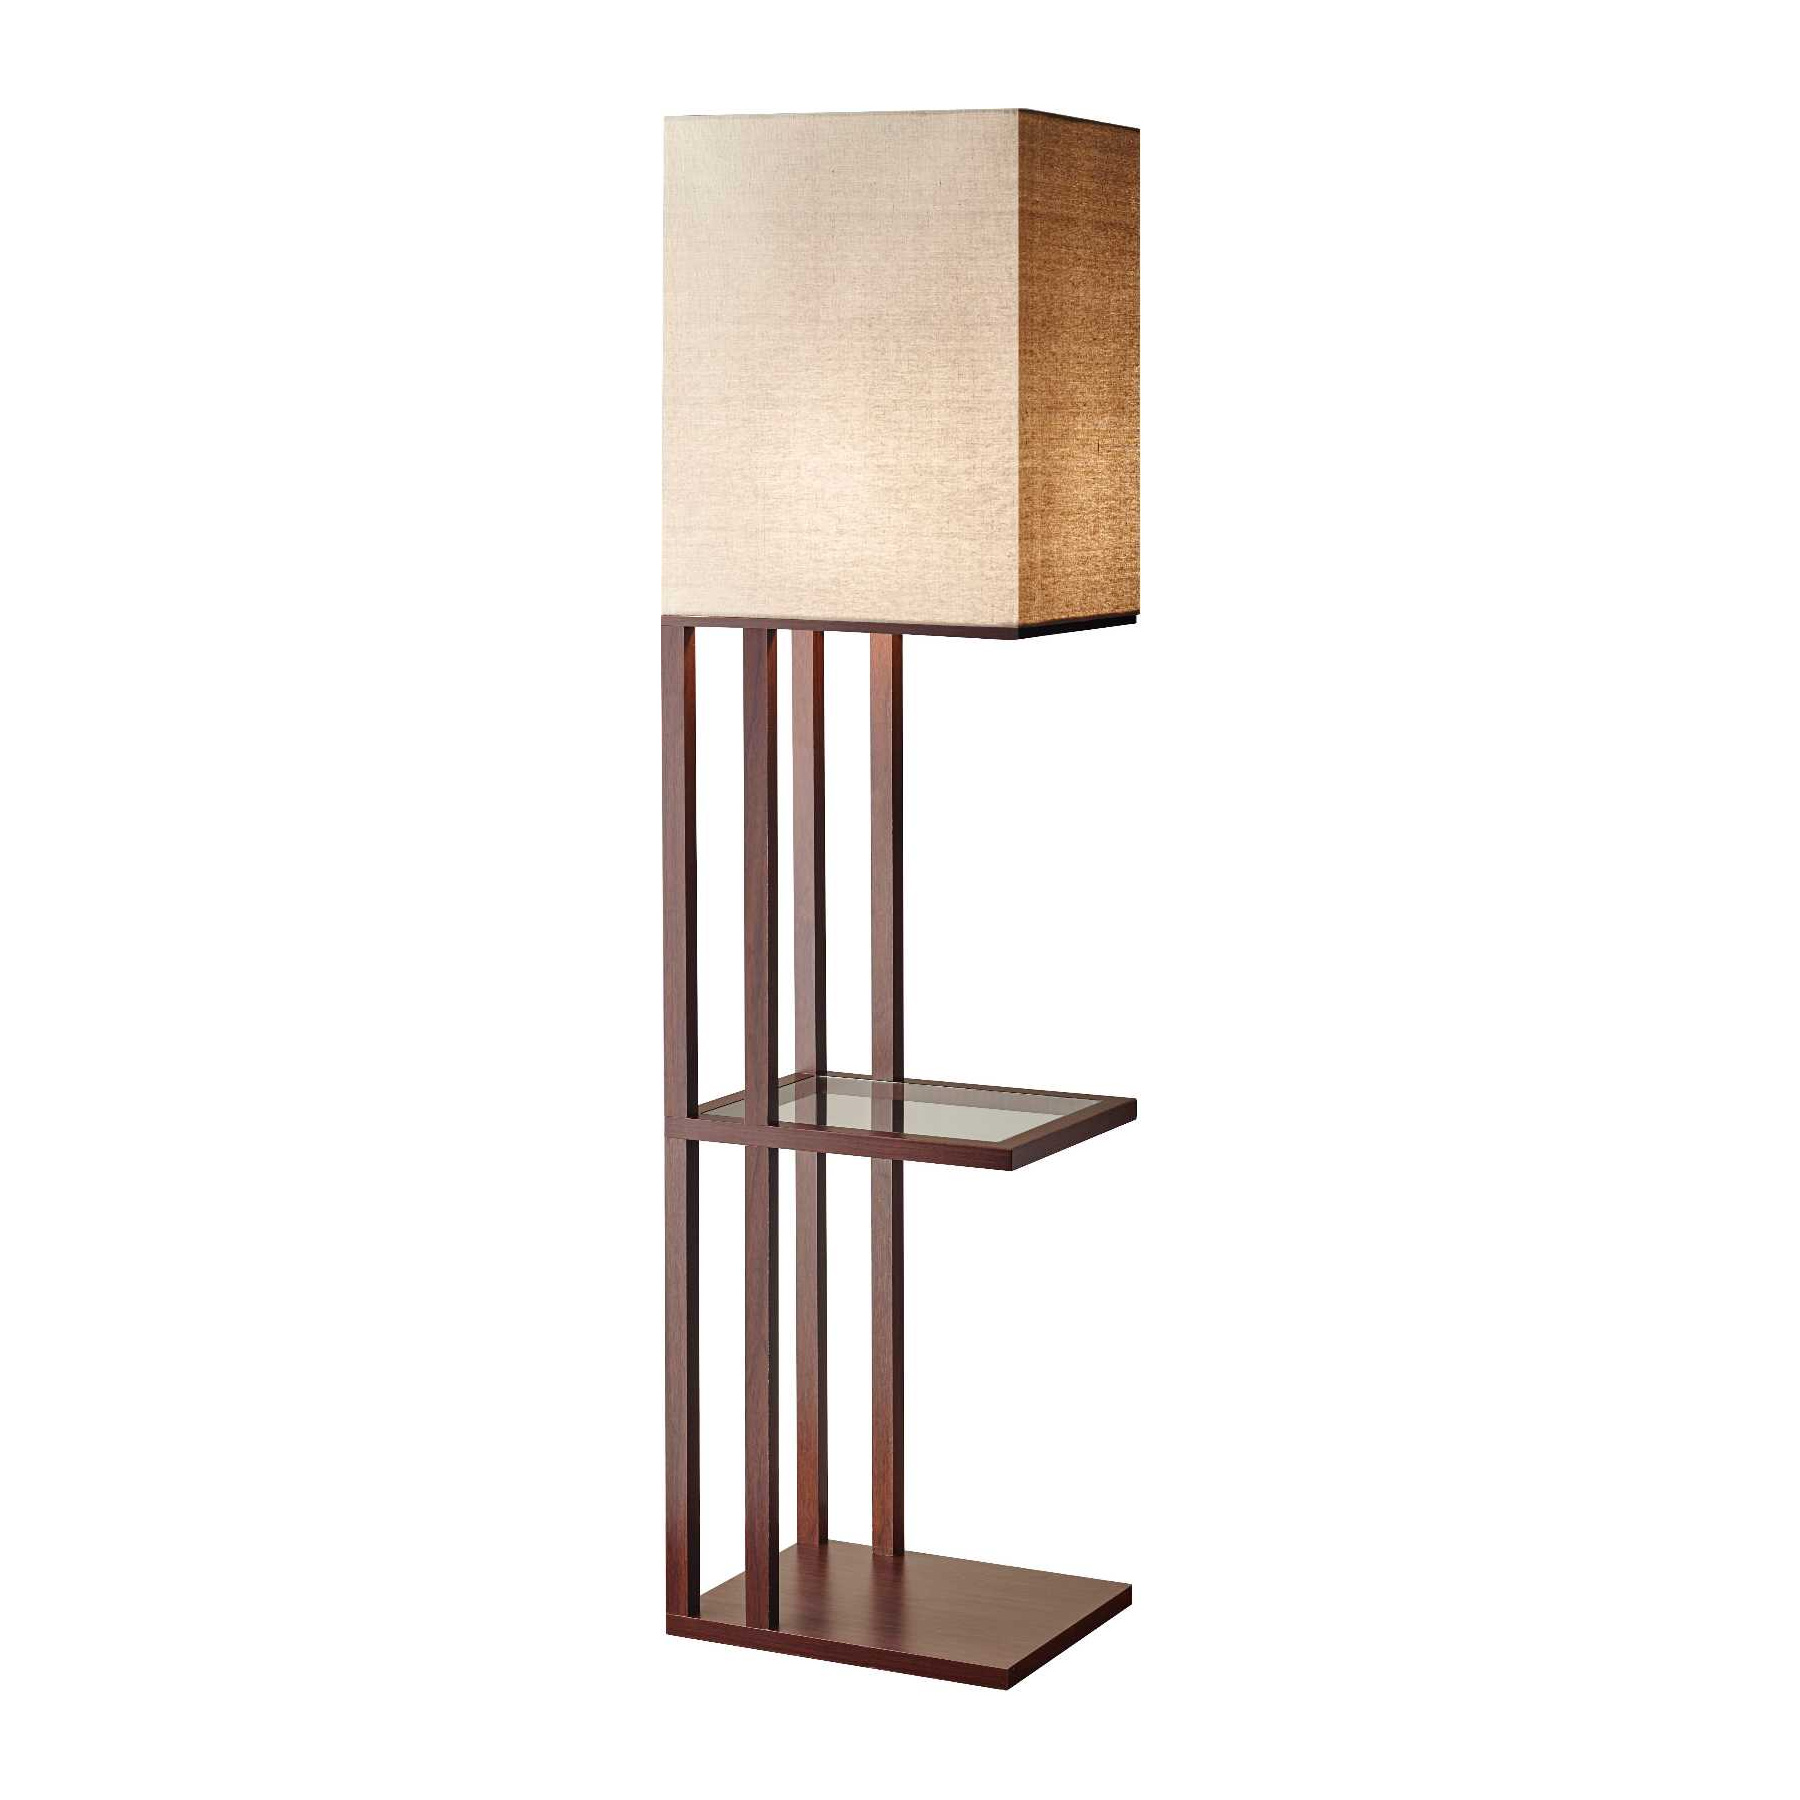 Attractive Accessorizing Lamp With Shelf